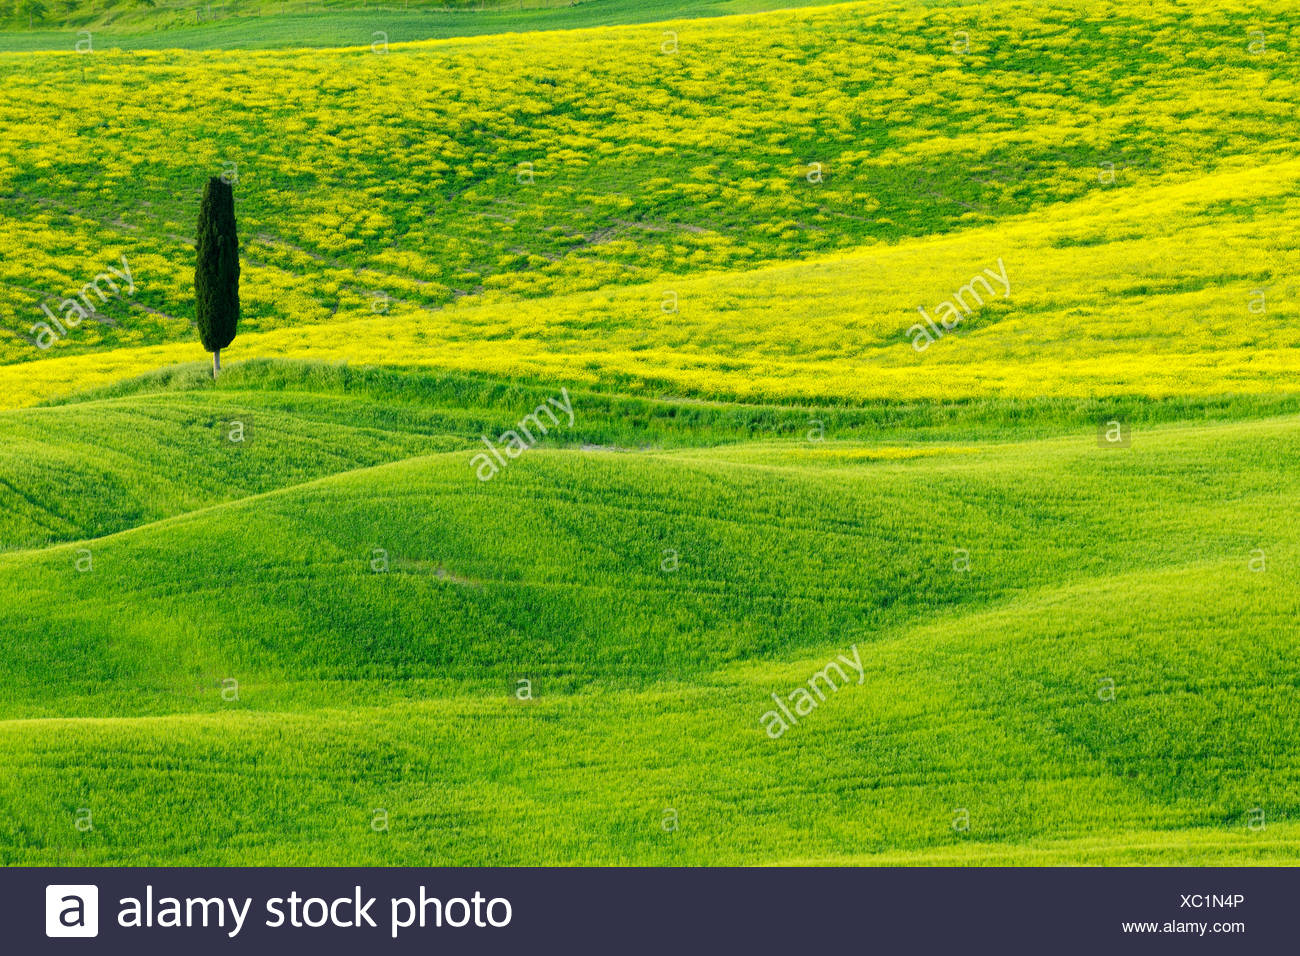 Cyprès (Cupressus sempervirens), vert et vallonné Farmland with Cypress, Val d' Orcia, San Quirico d'Orcia, Italie, Toscane Photo Stock